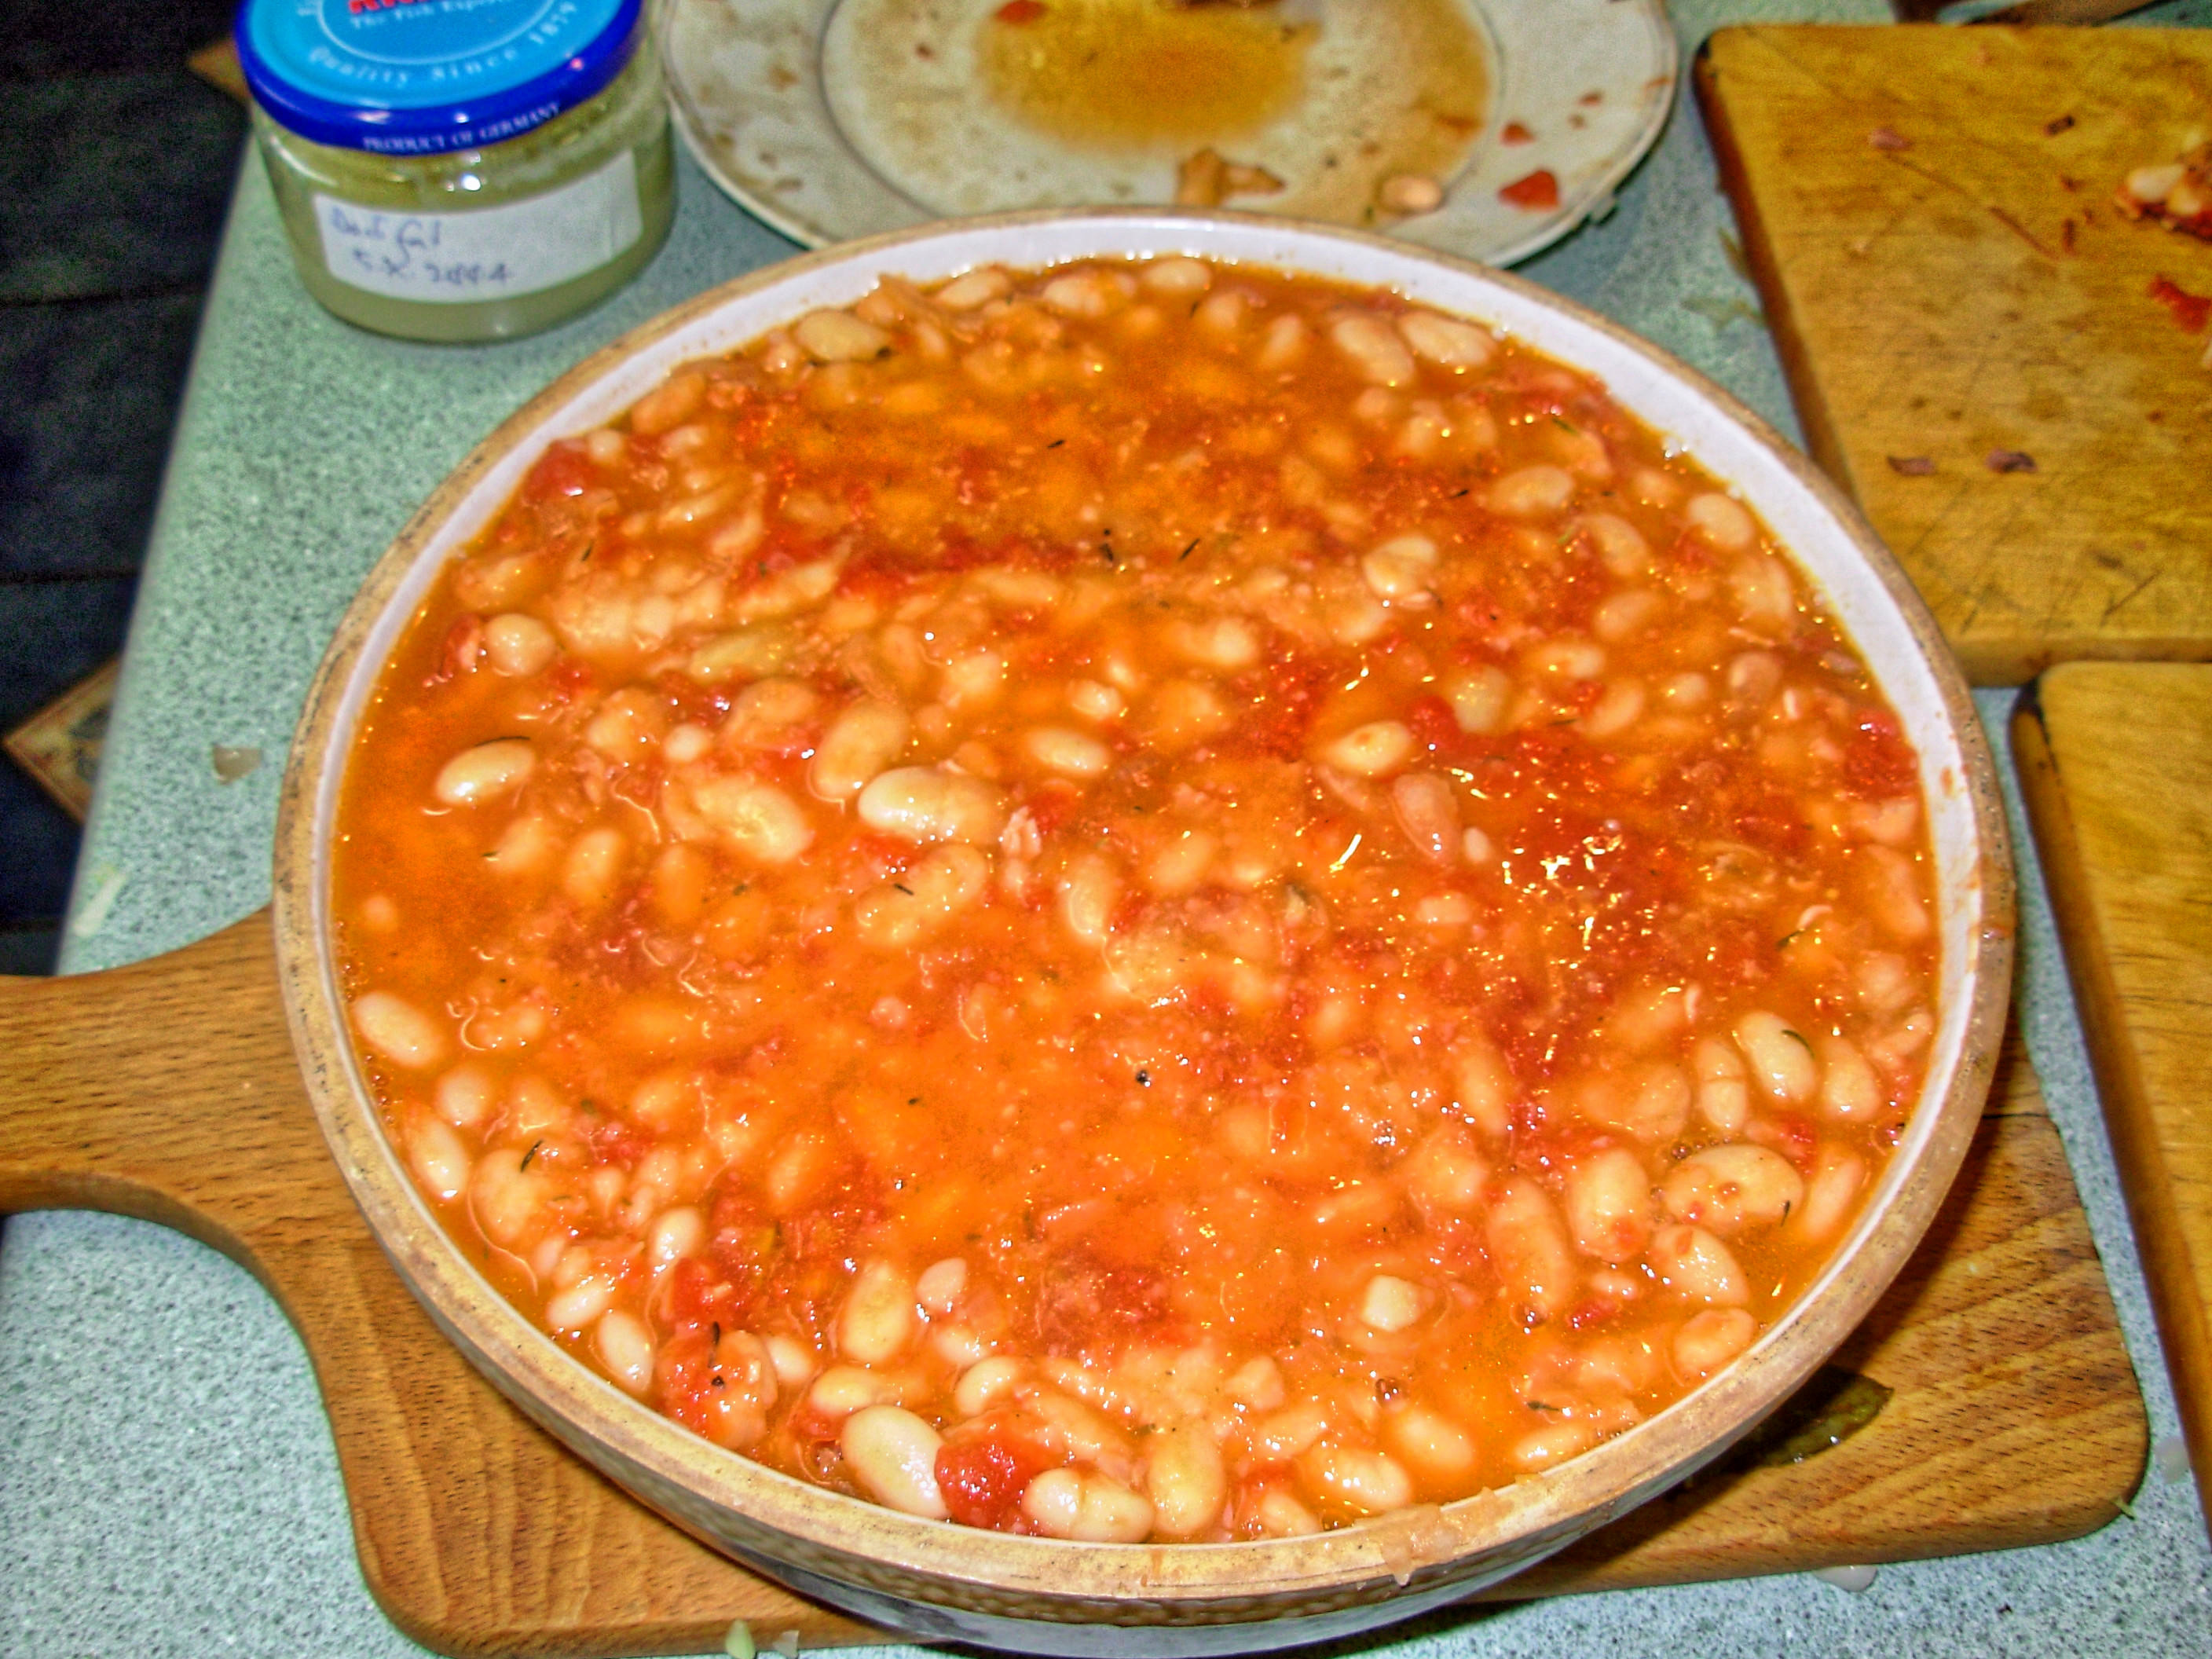 This should be cassoulet-12.jpeg.  Is it missing?